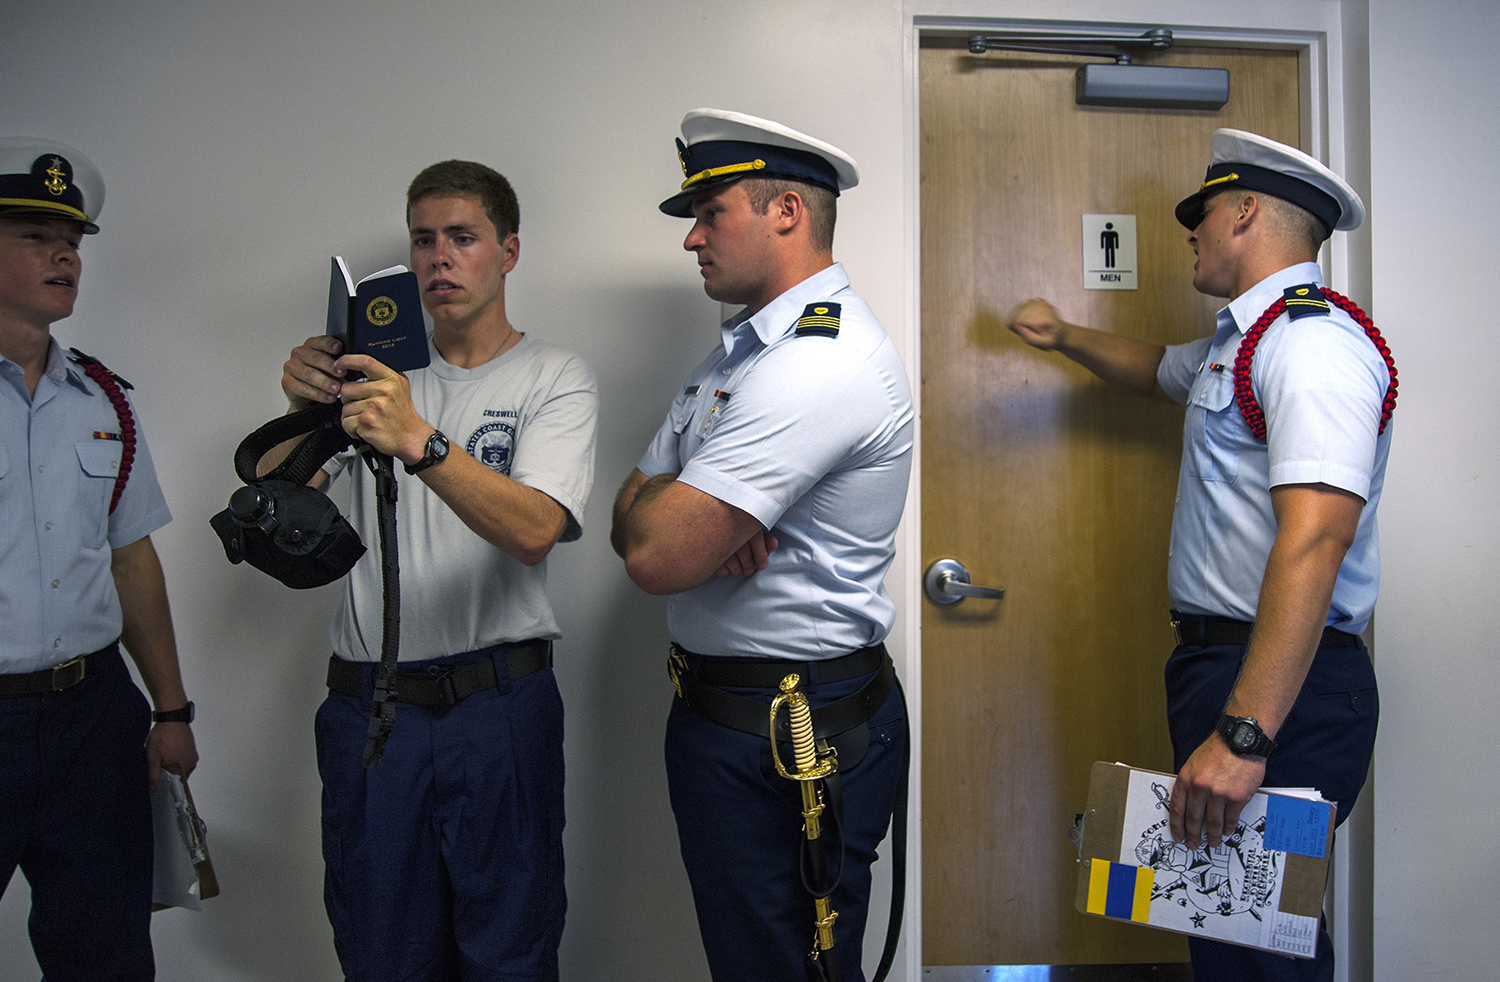 NEW LONDON- 06302014-- USCG Academy Cadres relentless push swabs to move at a quicker pace, never allowing them the chance to get comfortable in the Coast Guard's attempt at making the swabs work as a team and follow instructions during the USCG Academy's Swab Summer in New London, CT on June 30, 2014. (DANIEL OWEN | The Hartford Courant)